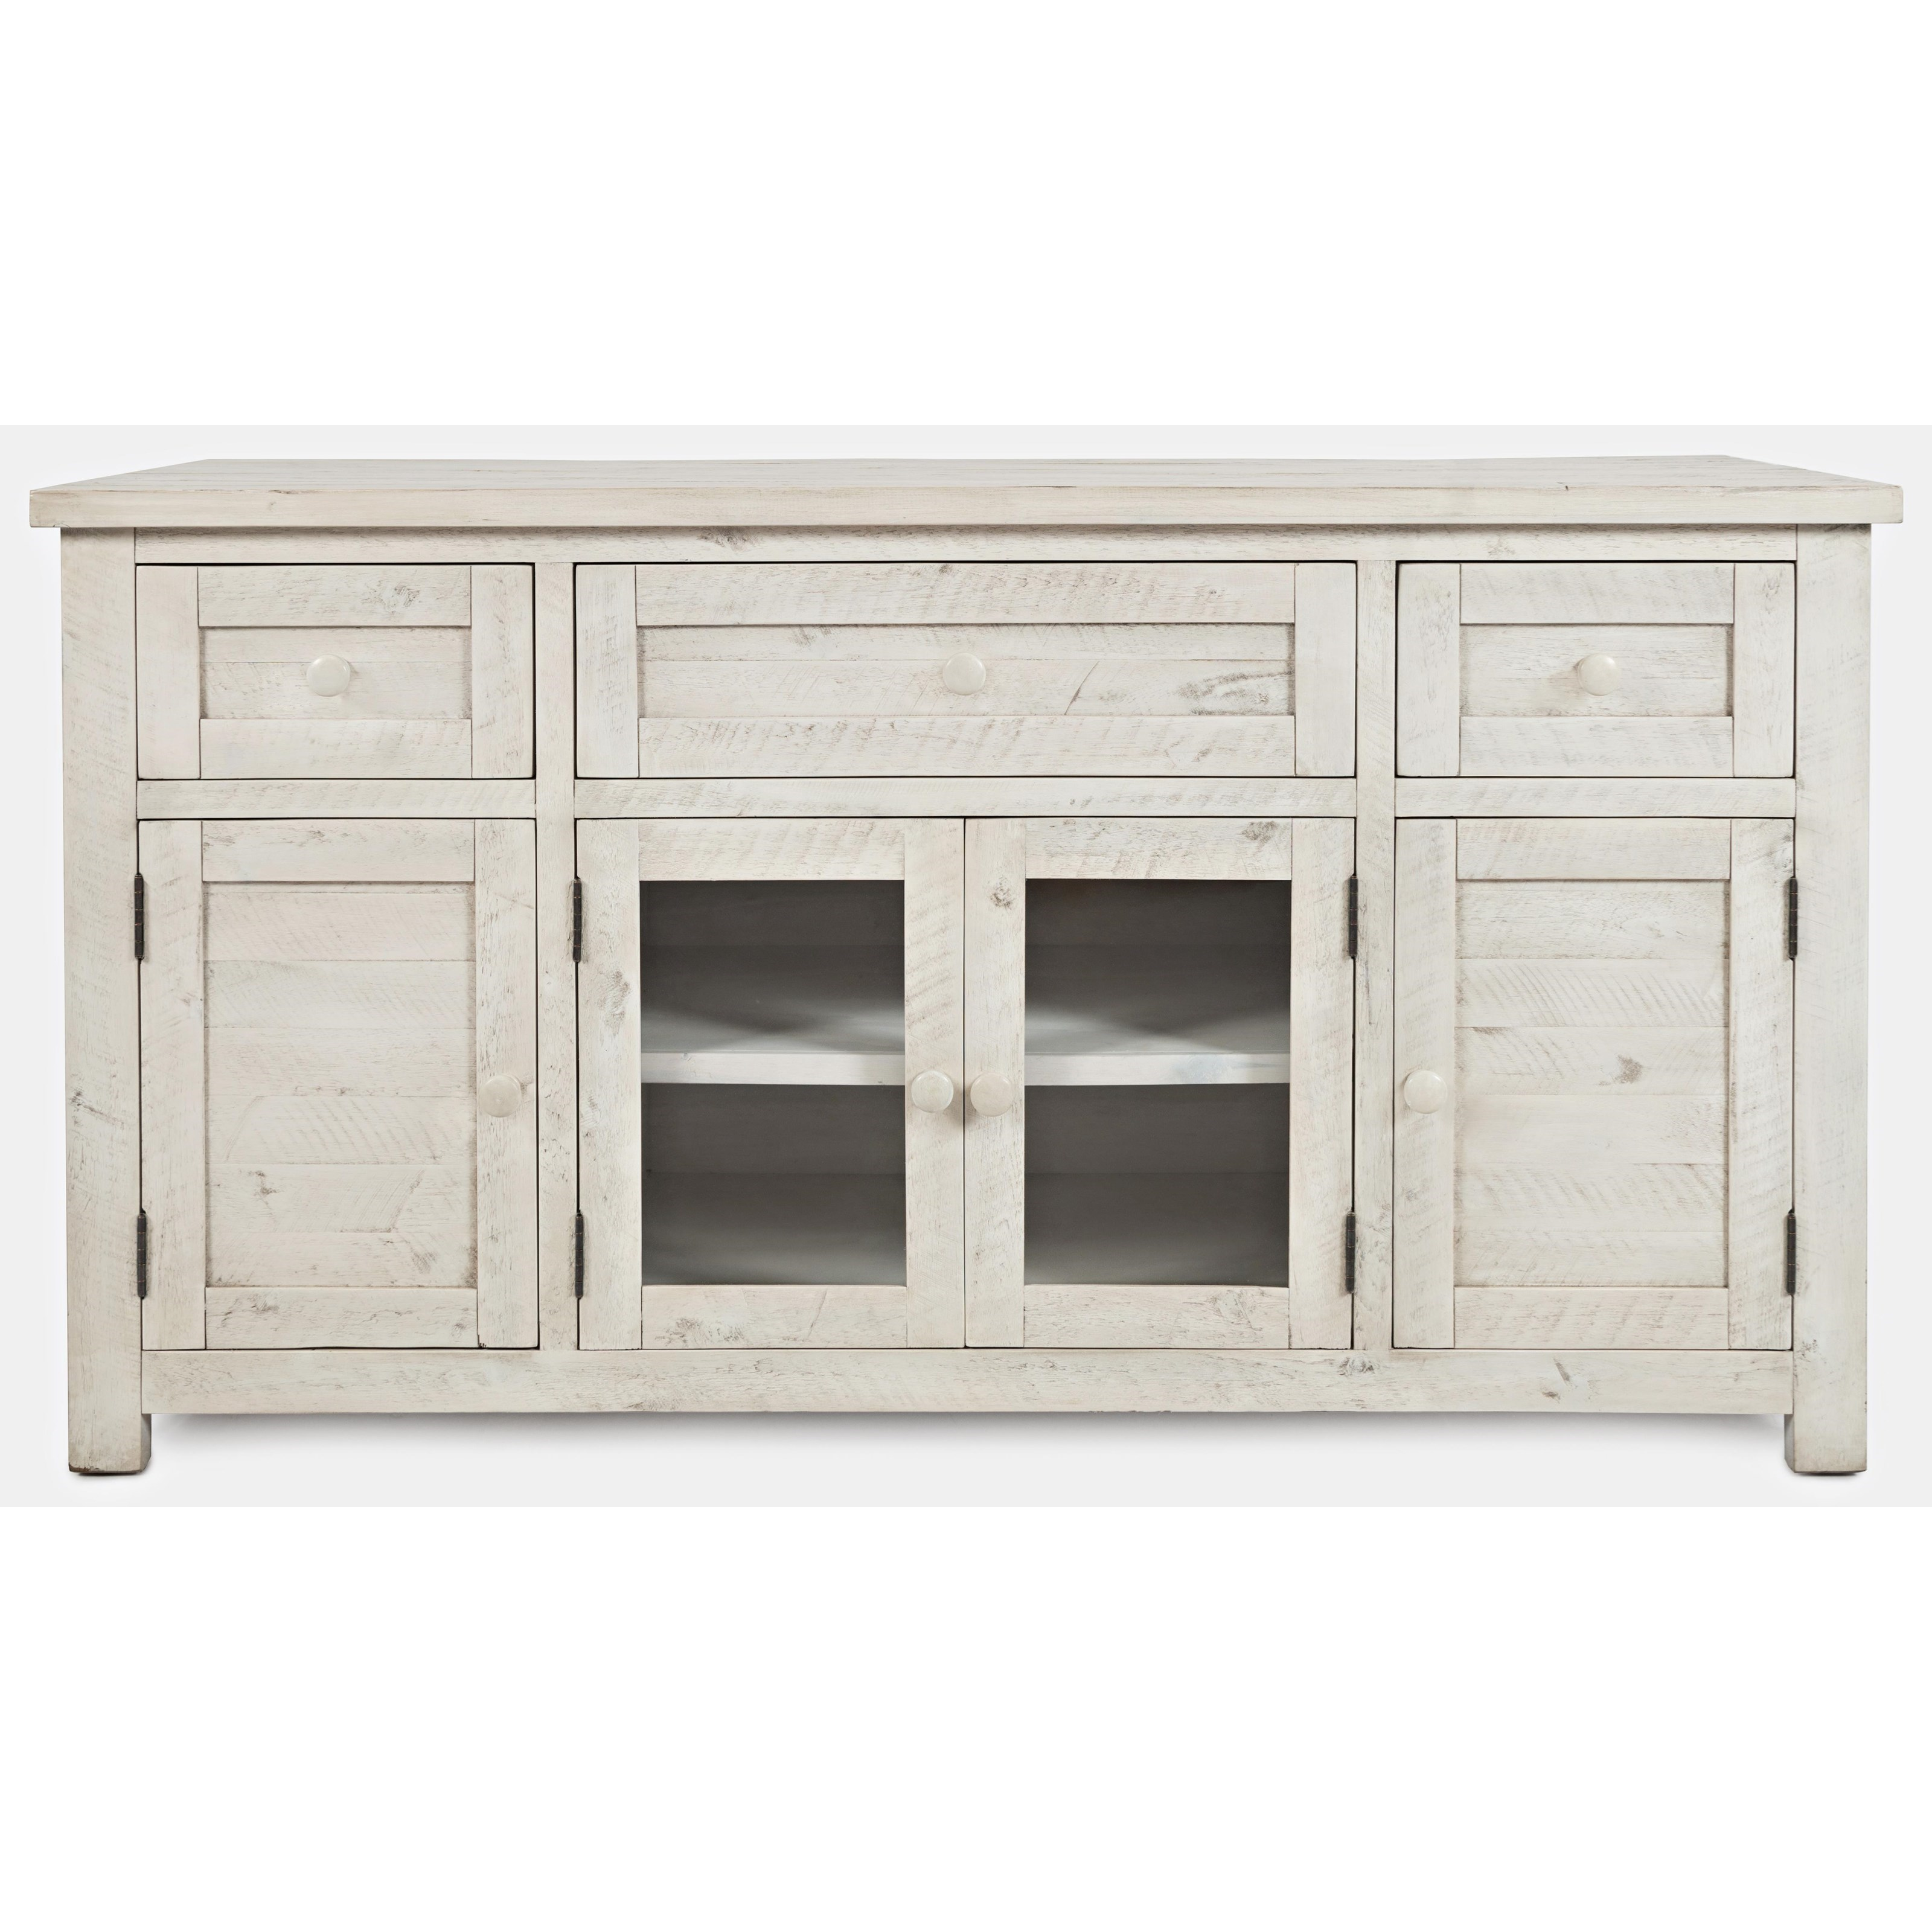 American Folklore Media Console by Jofran at Home Furnishings Direct